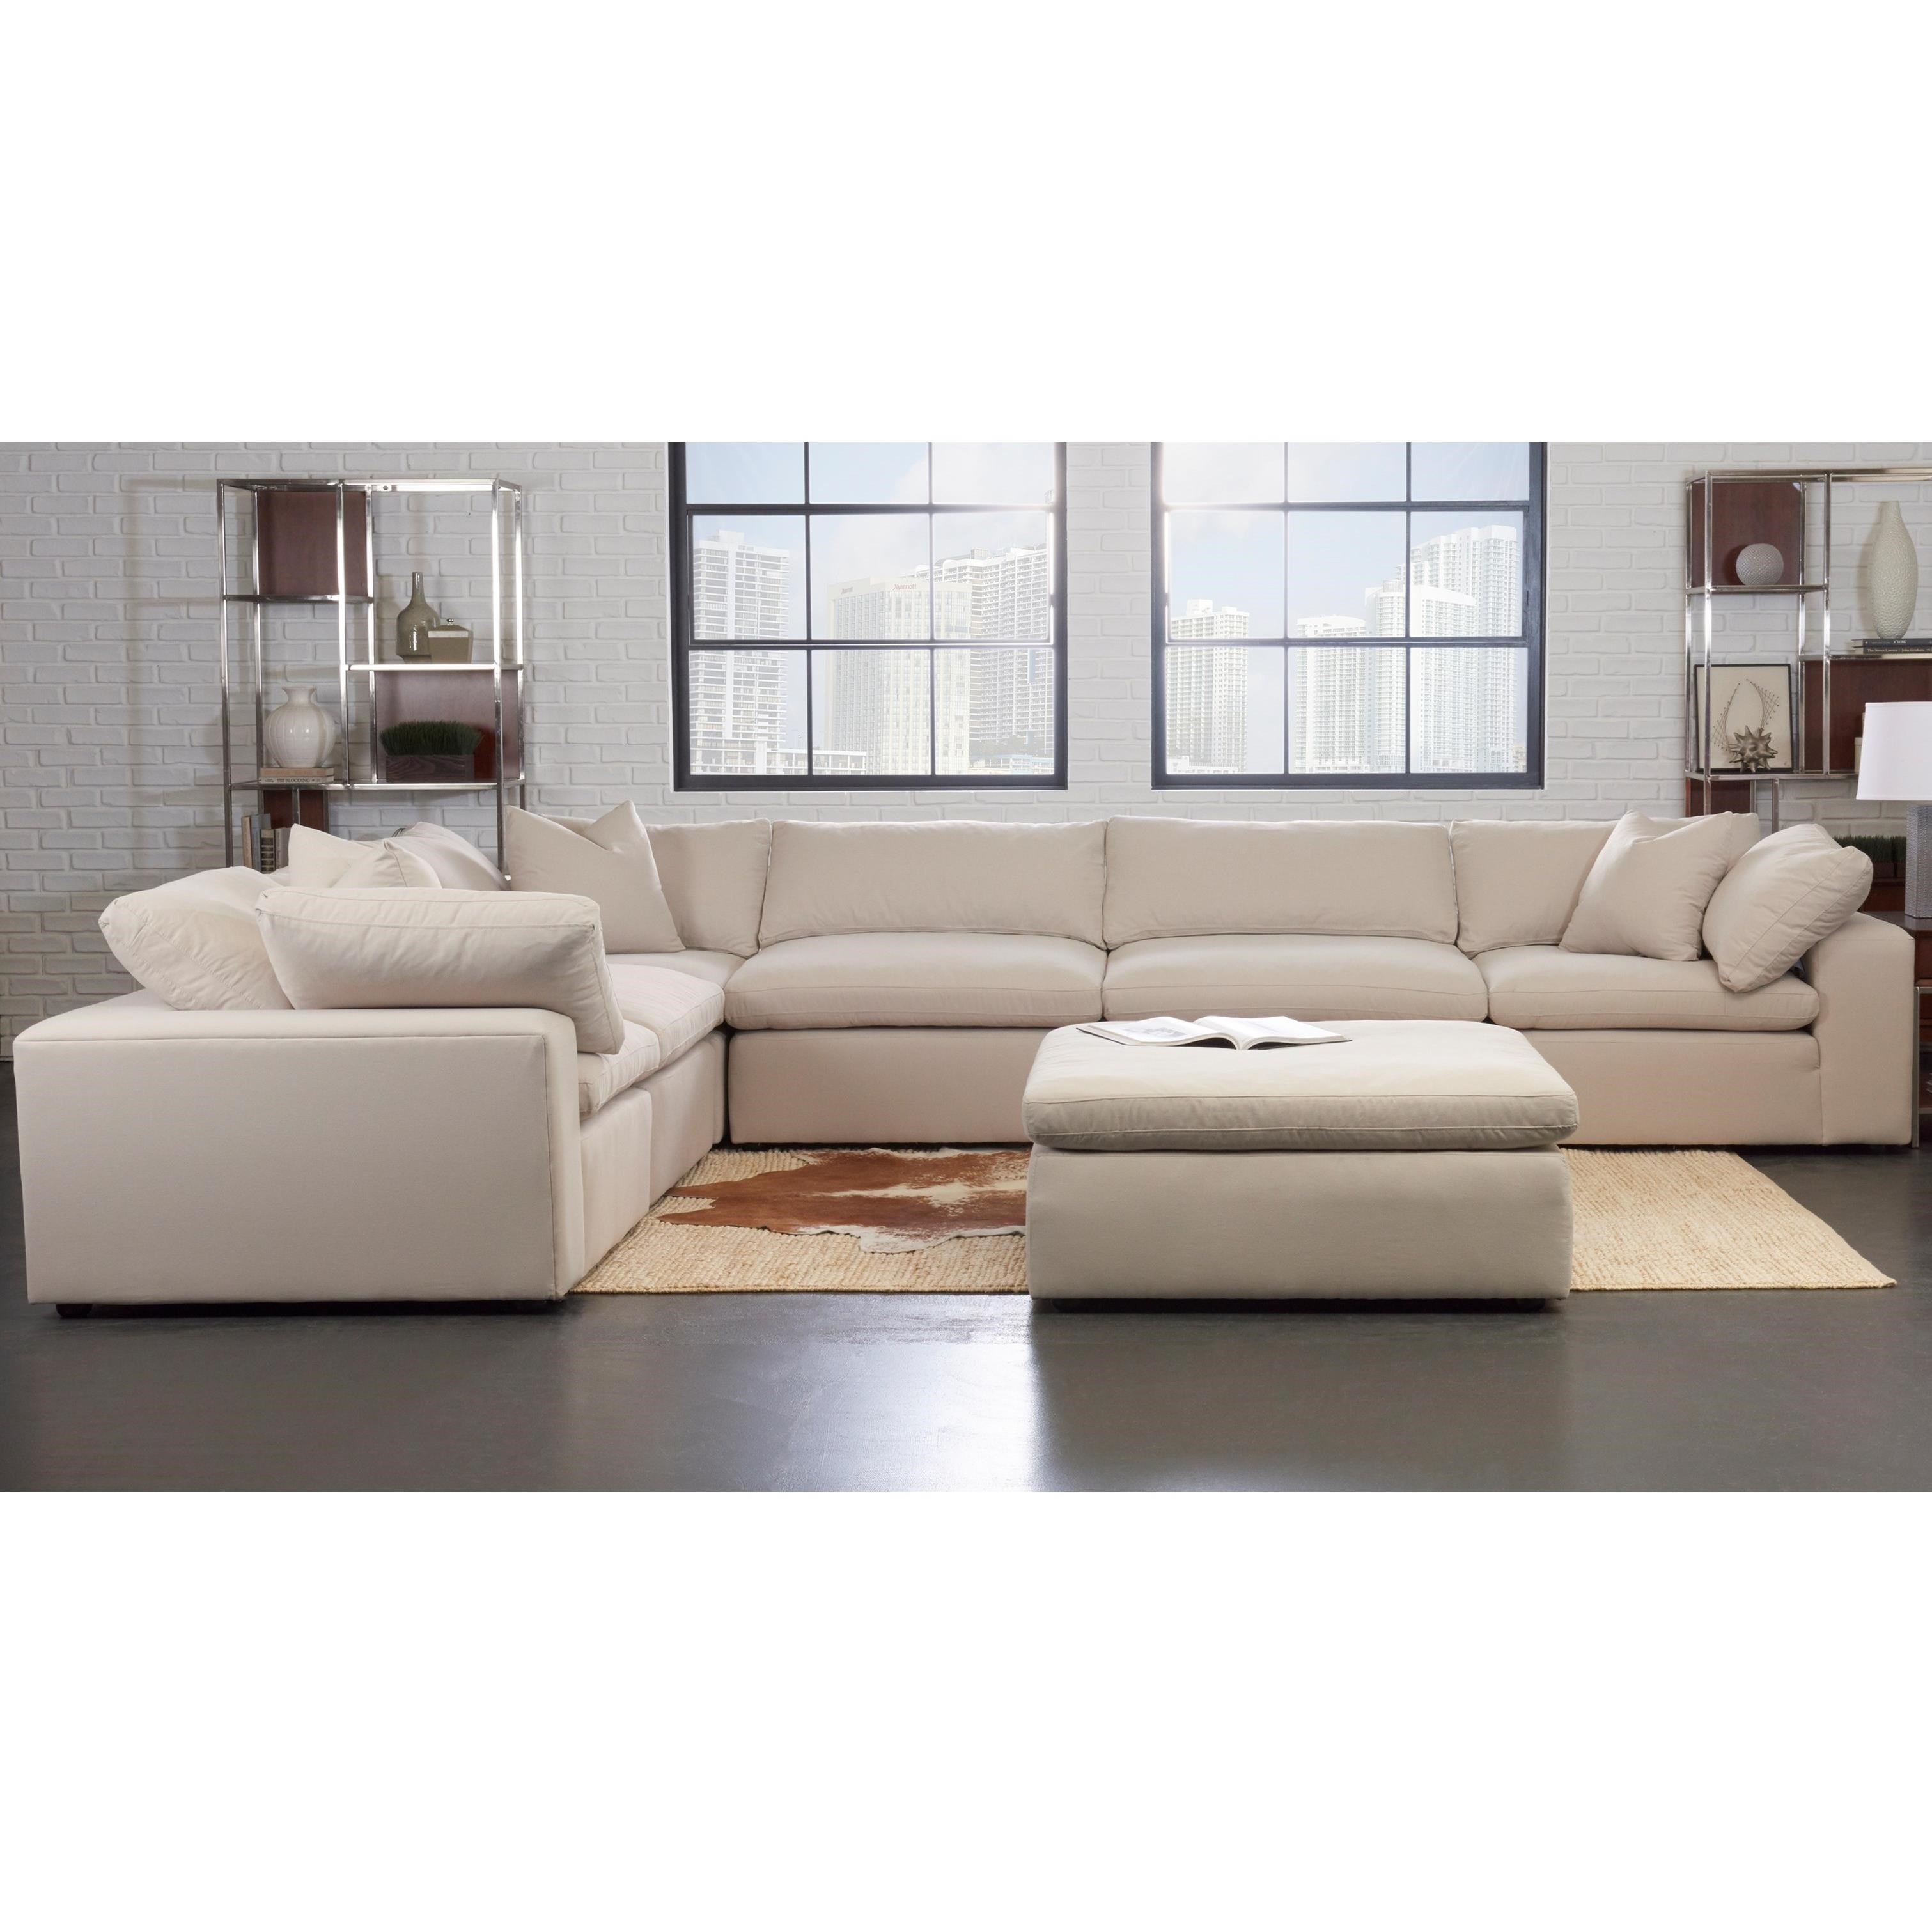 Klaussner Monterey Contemporary 6 Pc Modular Sectional Sofa